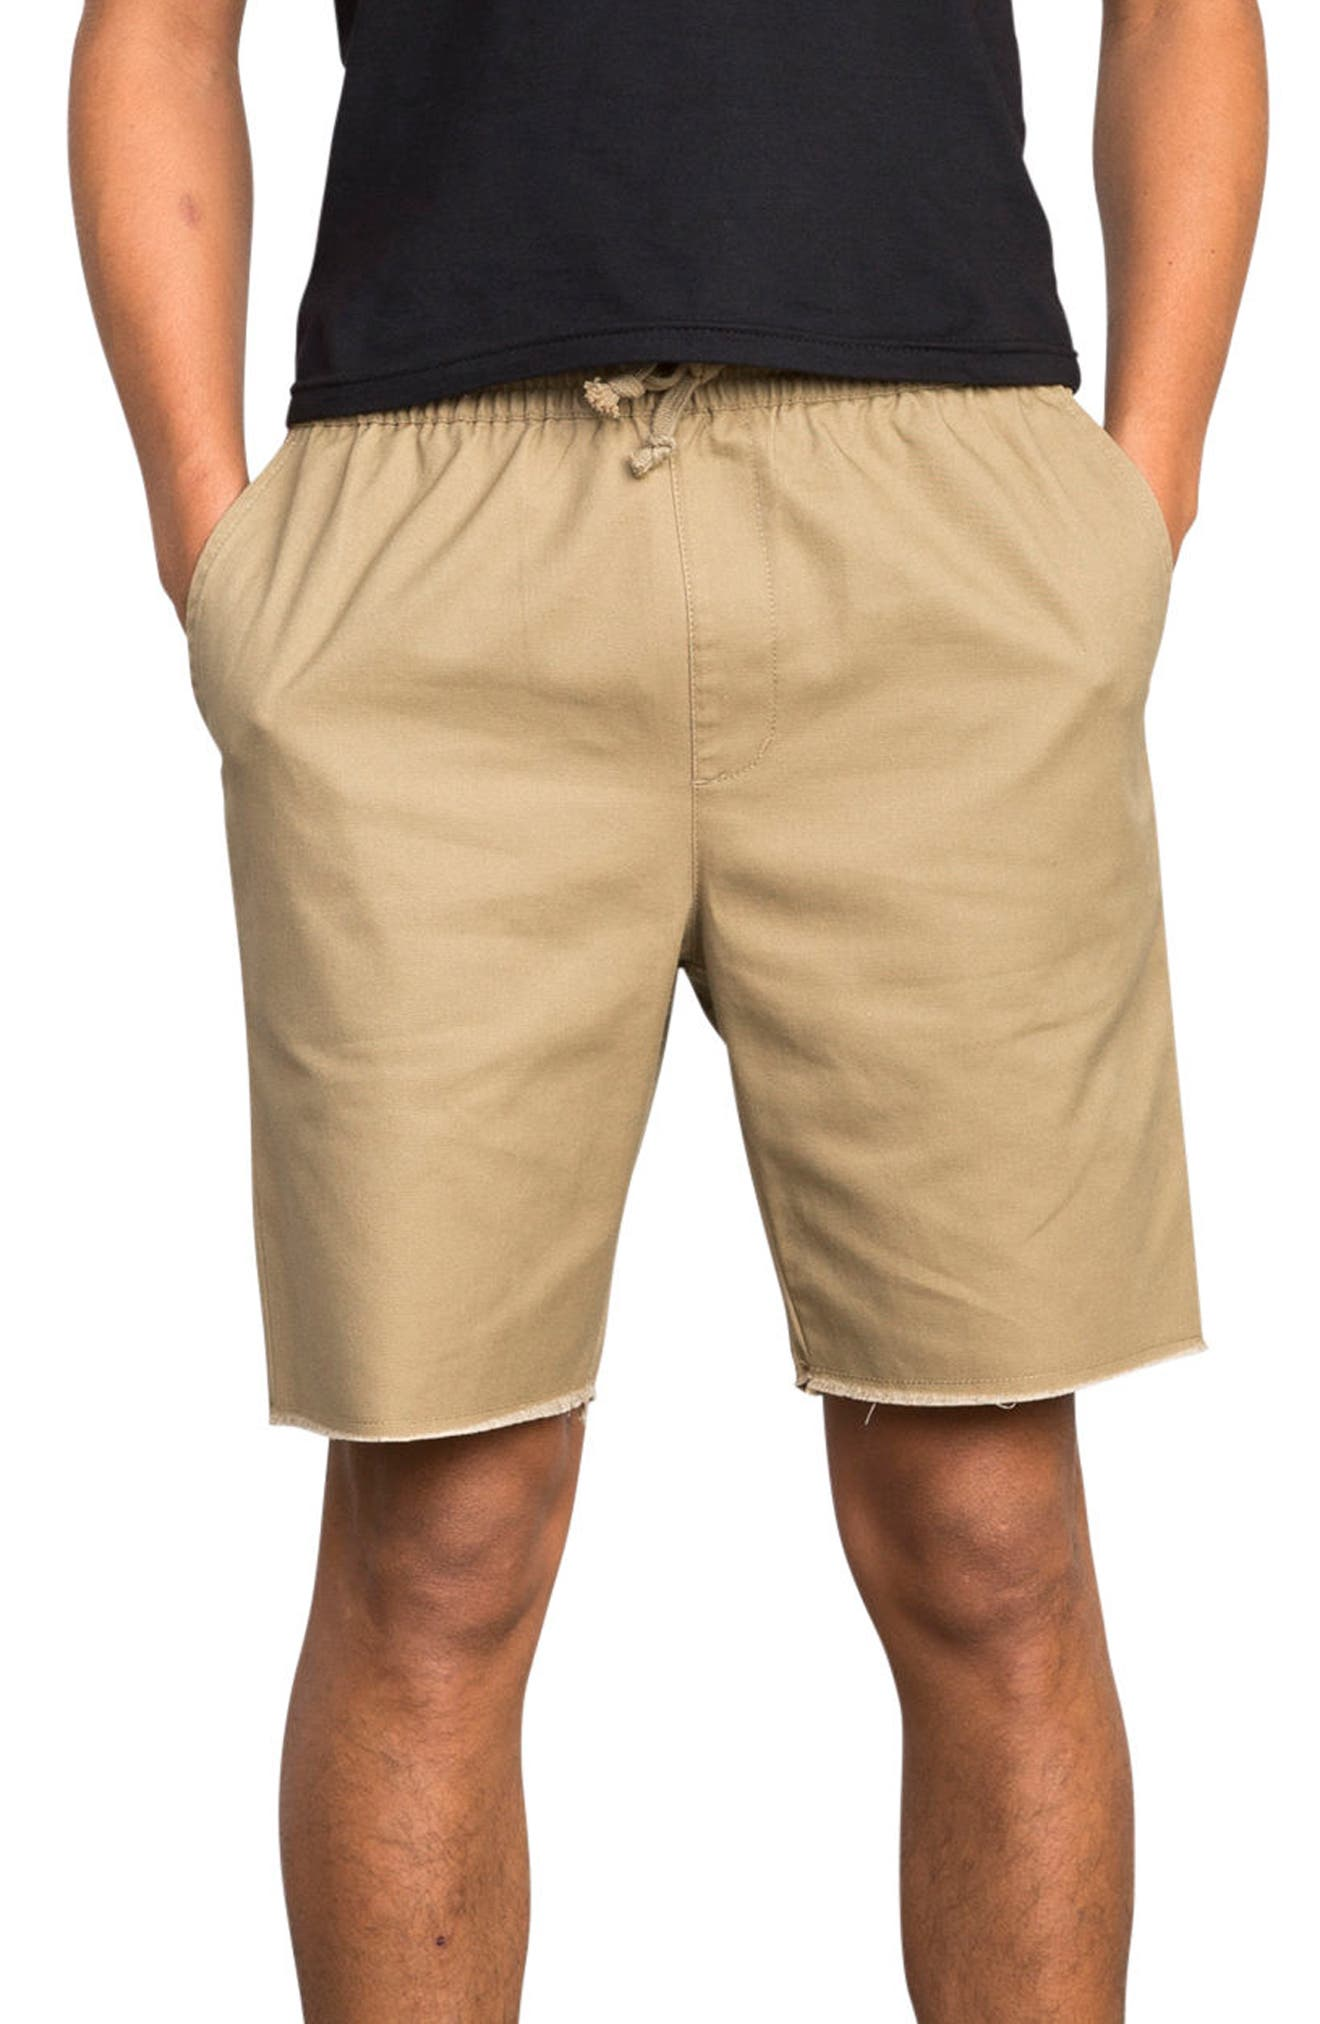 A.T. Dayshift Shorts,                         Main,                         color, 260